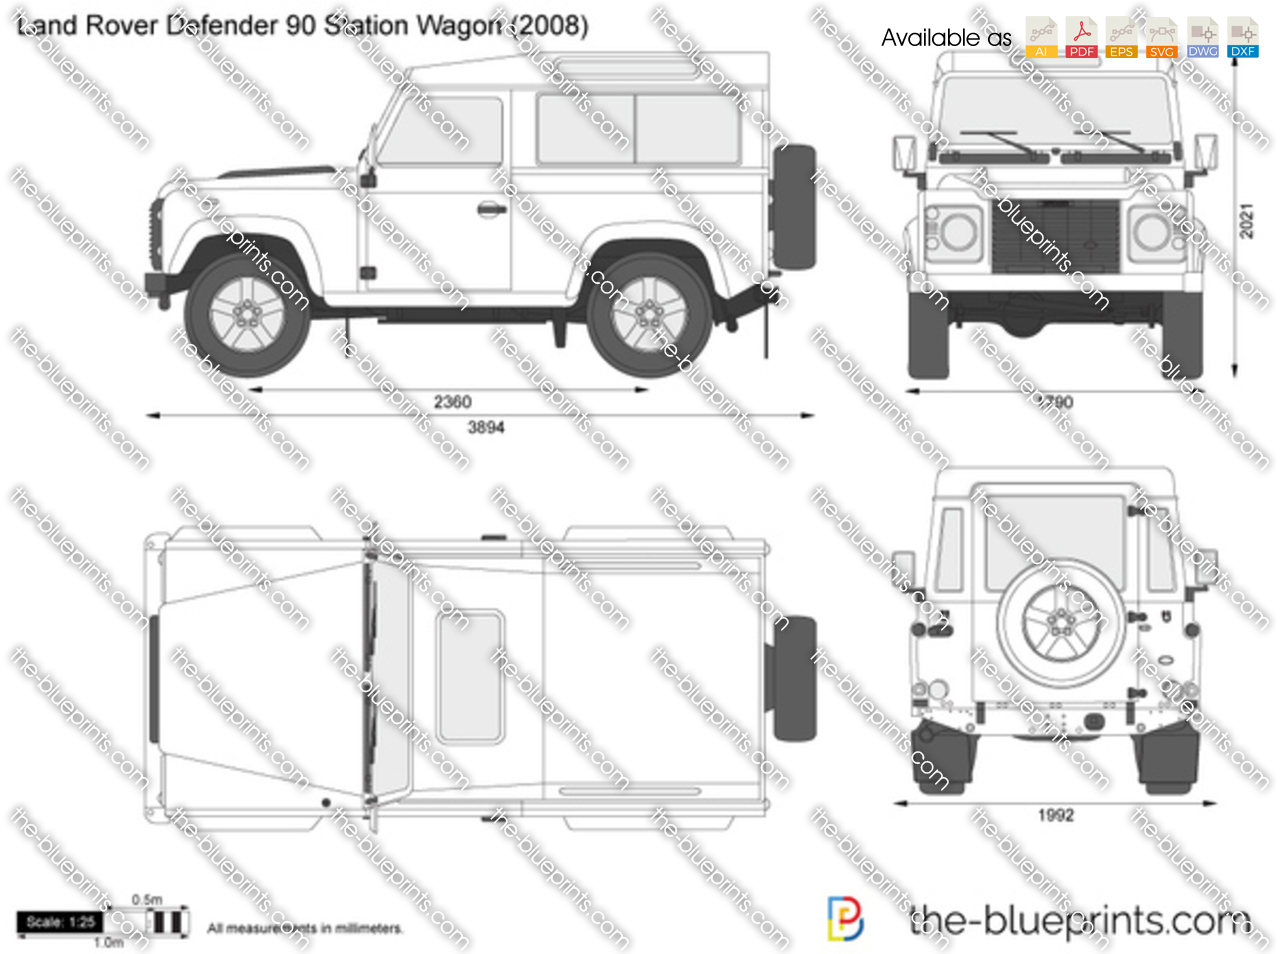 1993 Land Rover Defender 90 Station Wagon